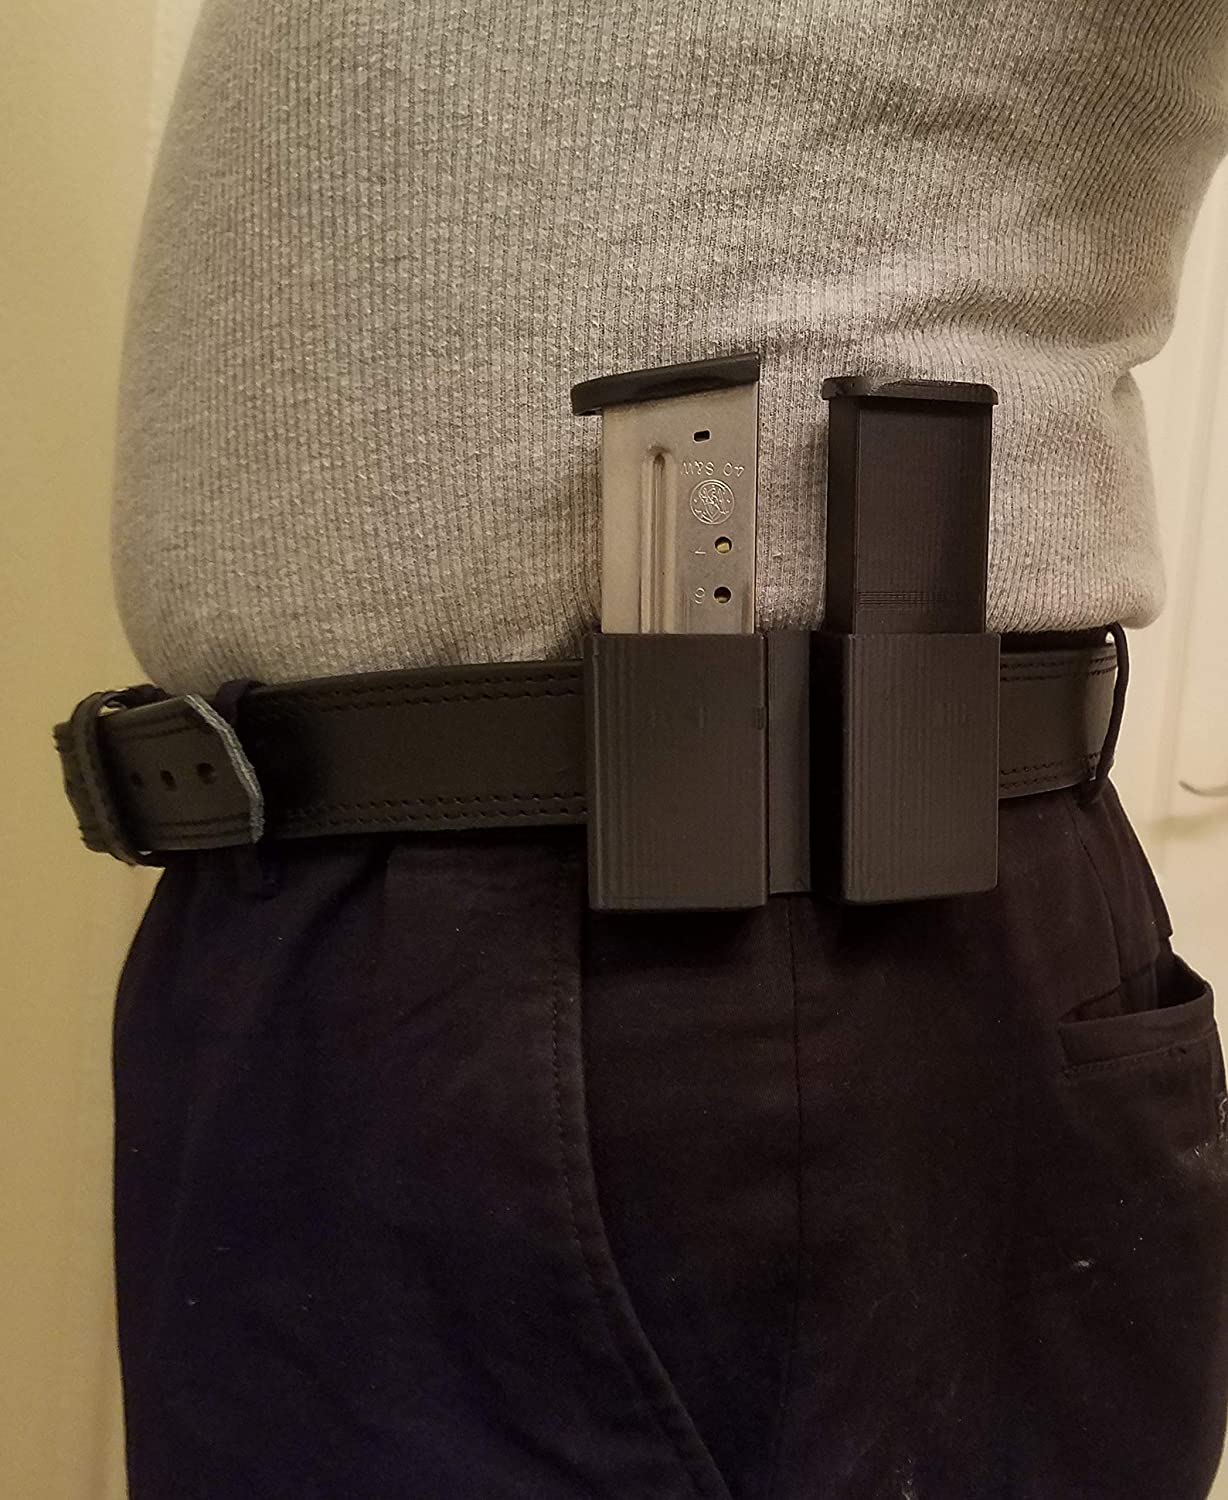 2 Mag Pouch fits Smith & Wesson, Shield, 9mm & 40 Cal. Mags. (Polymer)